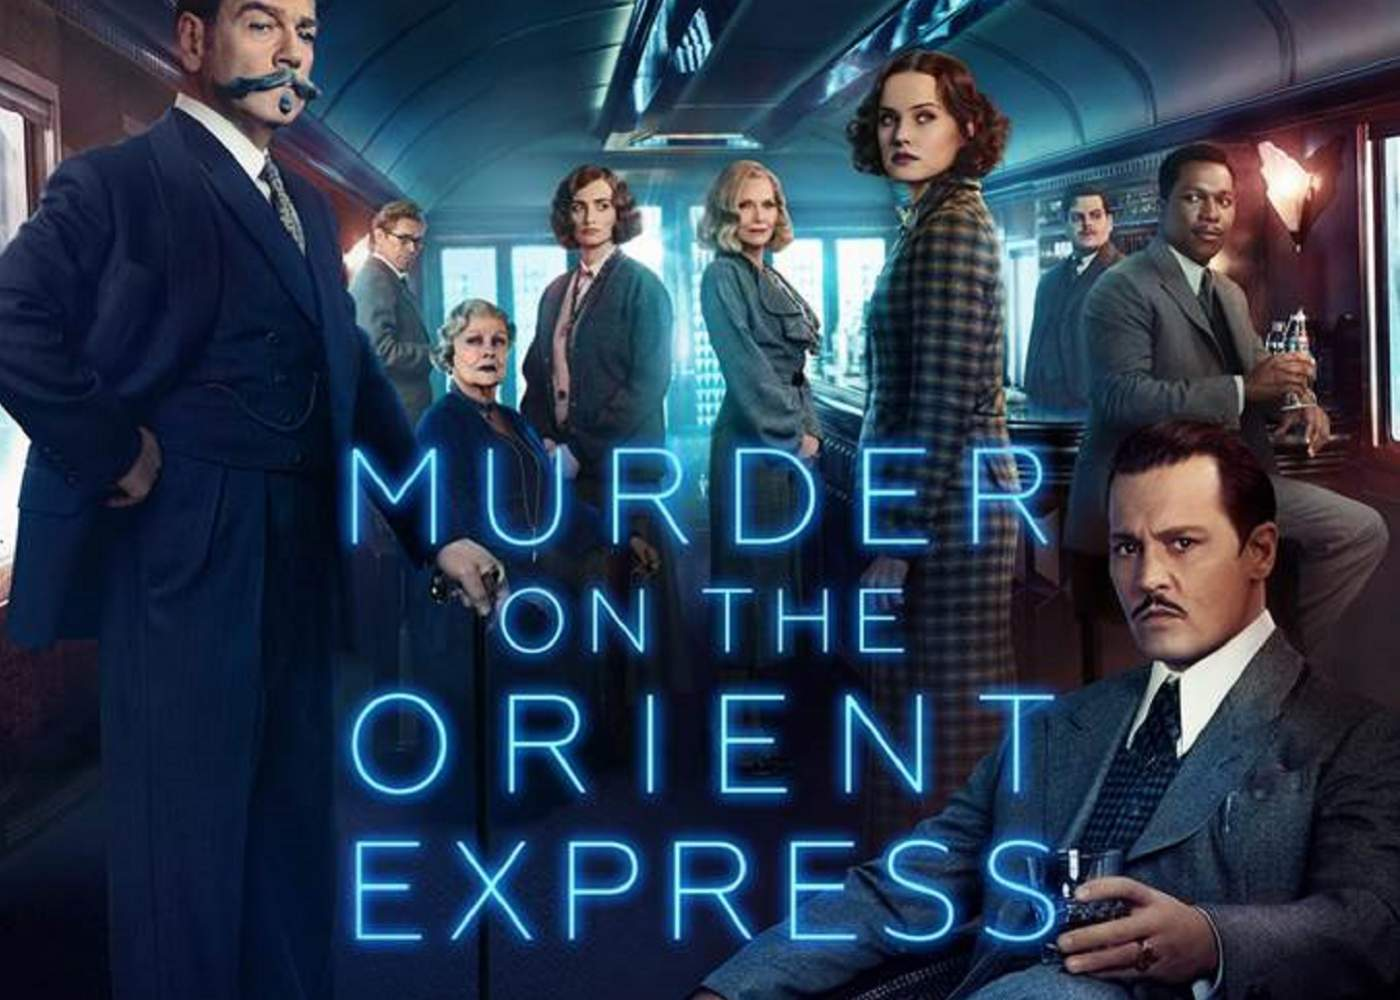 Murder on the Orient Express Posters Gather the Suspects